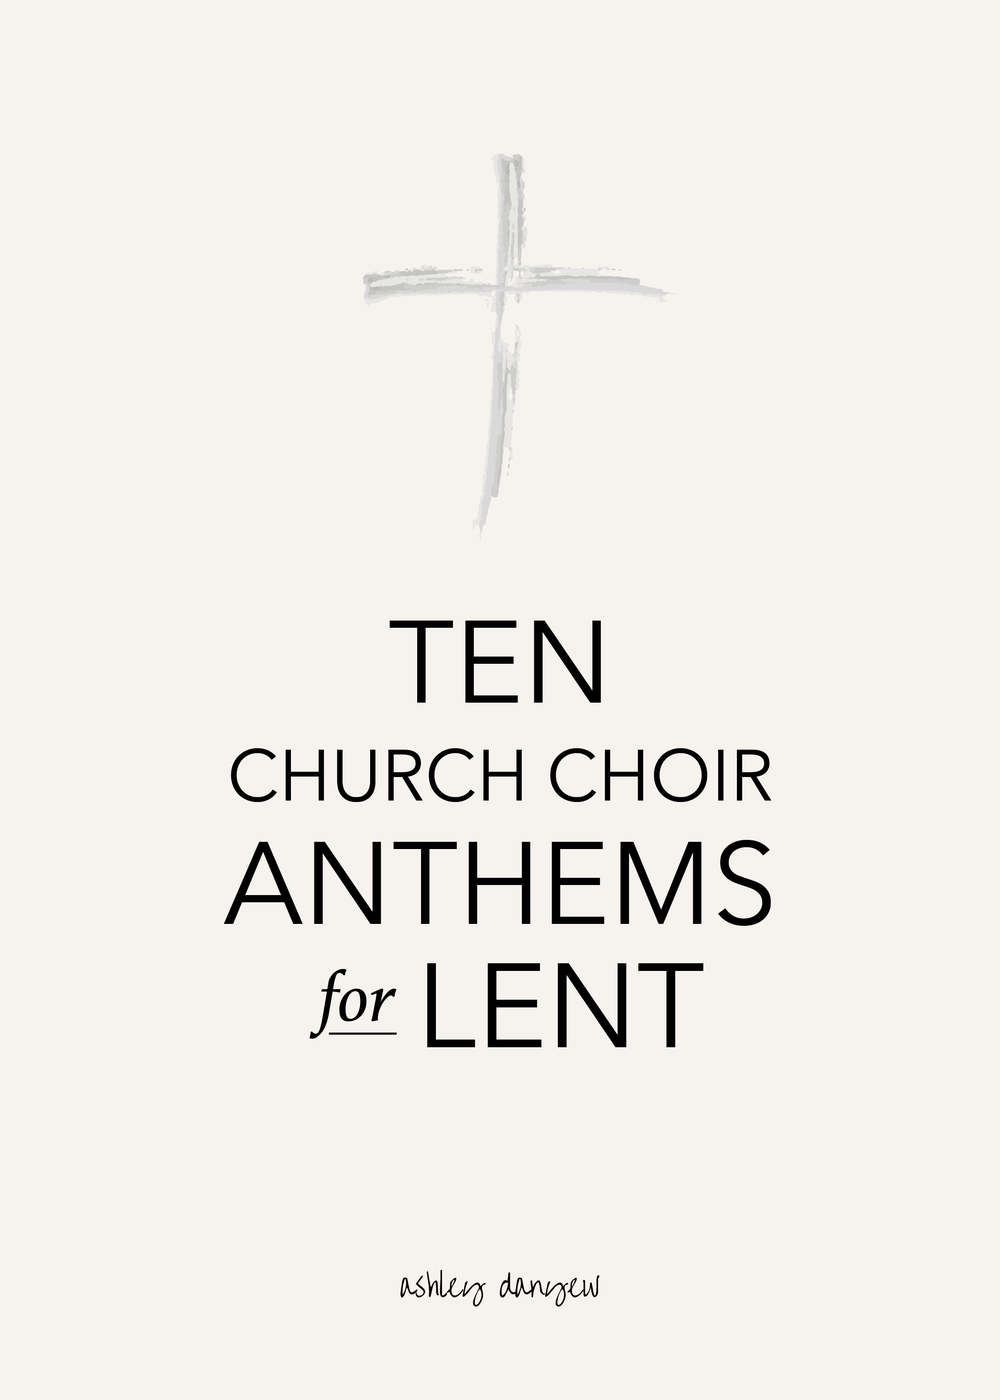 Ten Church Choir Anthems for Lent-01.png